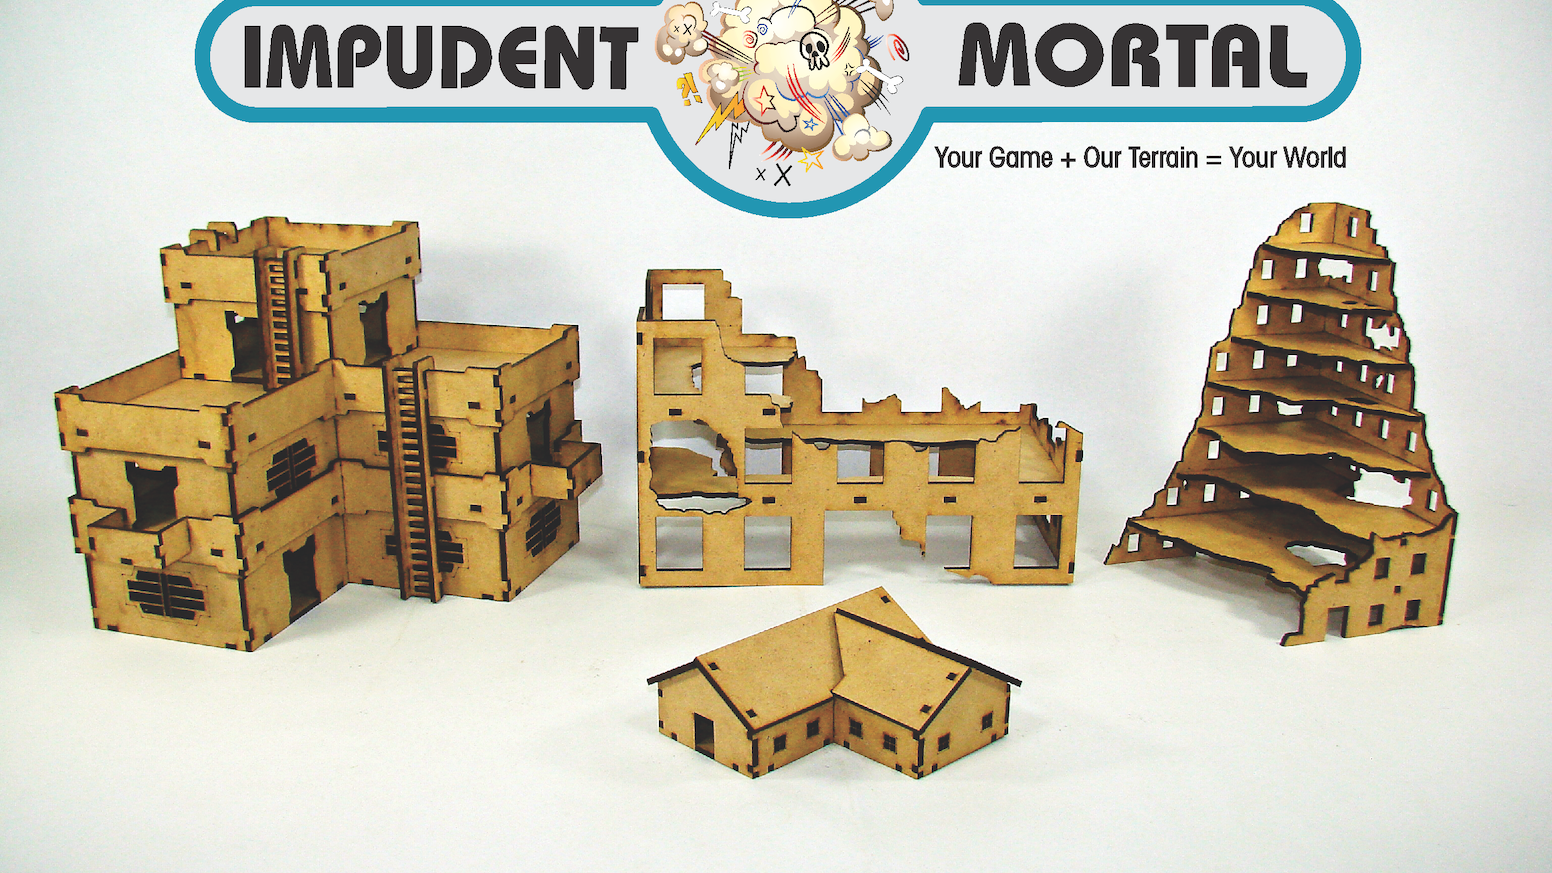 Impudent Mortal is offering an inexpensive, easy to assemble line of terrain for both 15mm and 28mm table top miniature games.